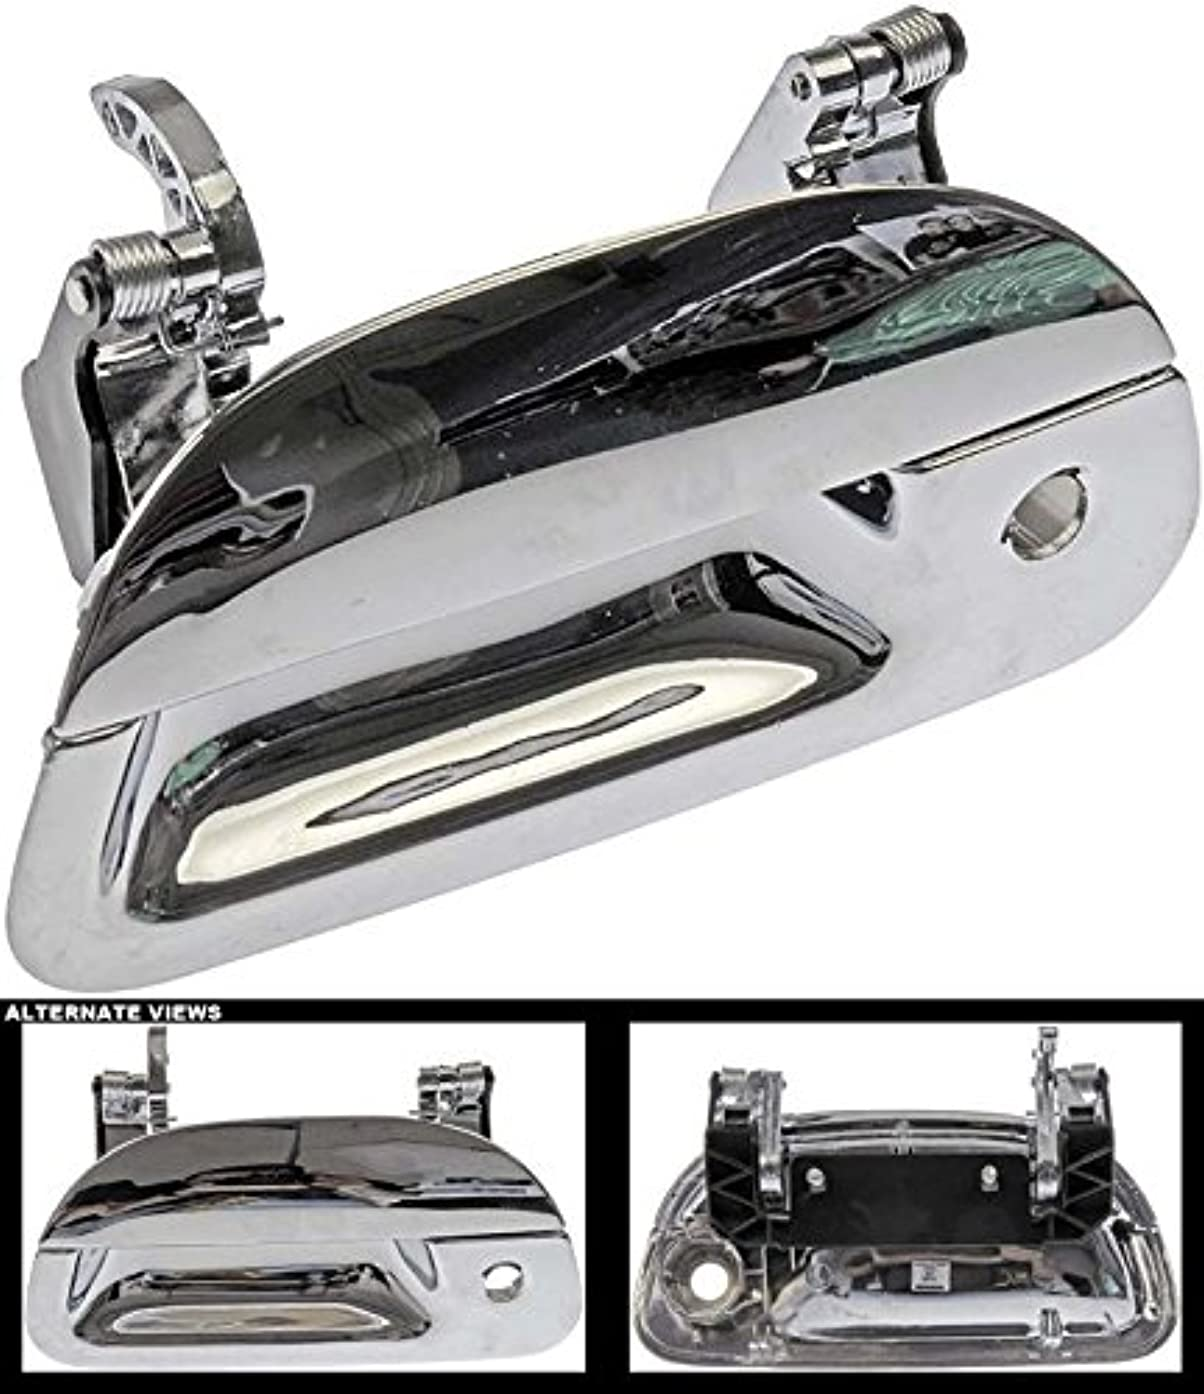 APDTY 02196 Chrome Rear Tailgate Handle With Keyhole Fits Select 1997-2007 Ford F150, F250, F350, F450, & F550 Trucks; See Description For Details (Replaces XL3Z9943400AAACH)